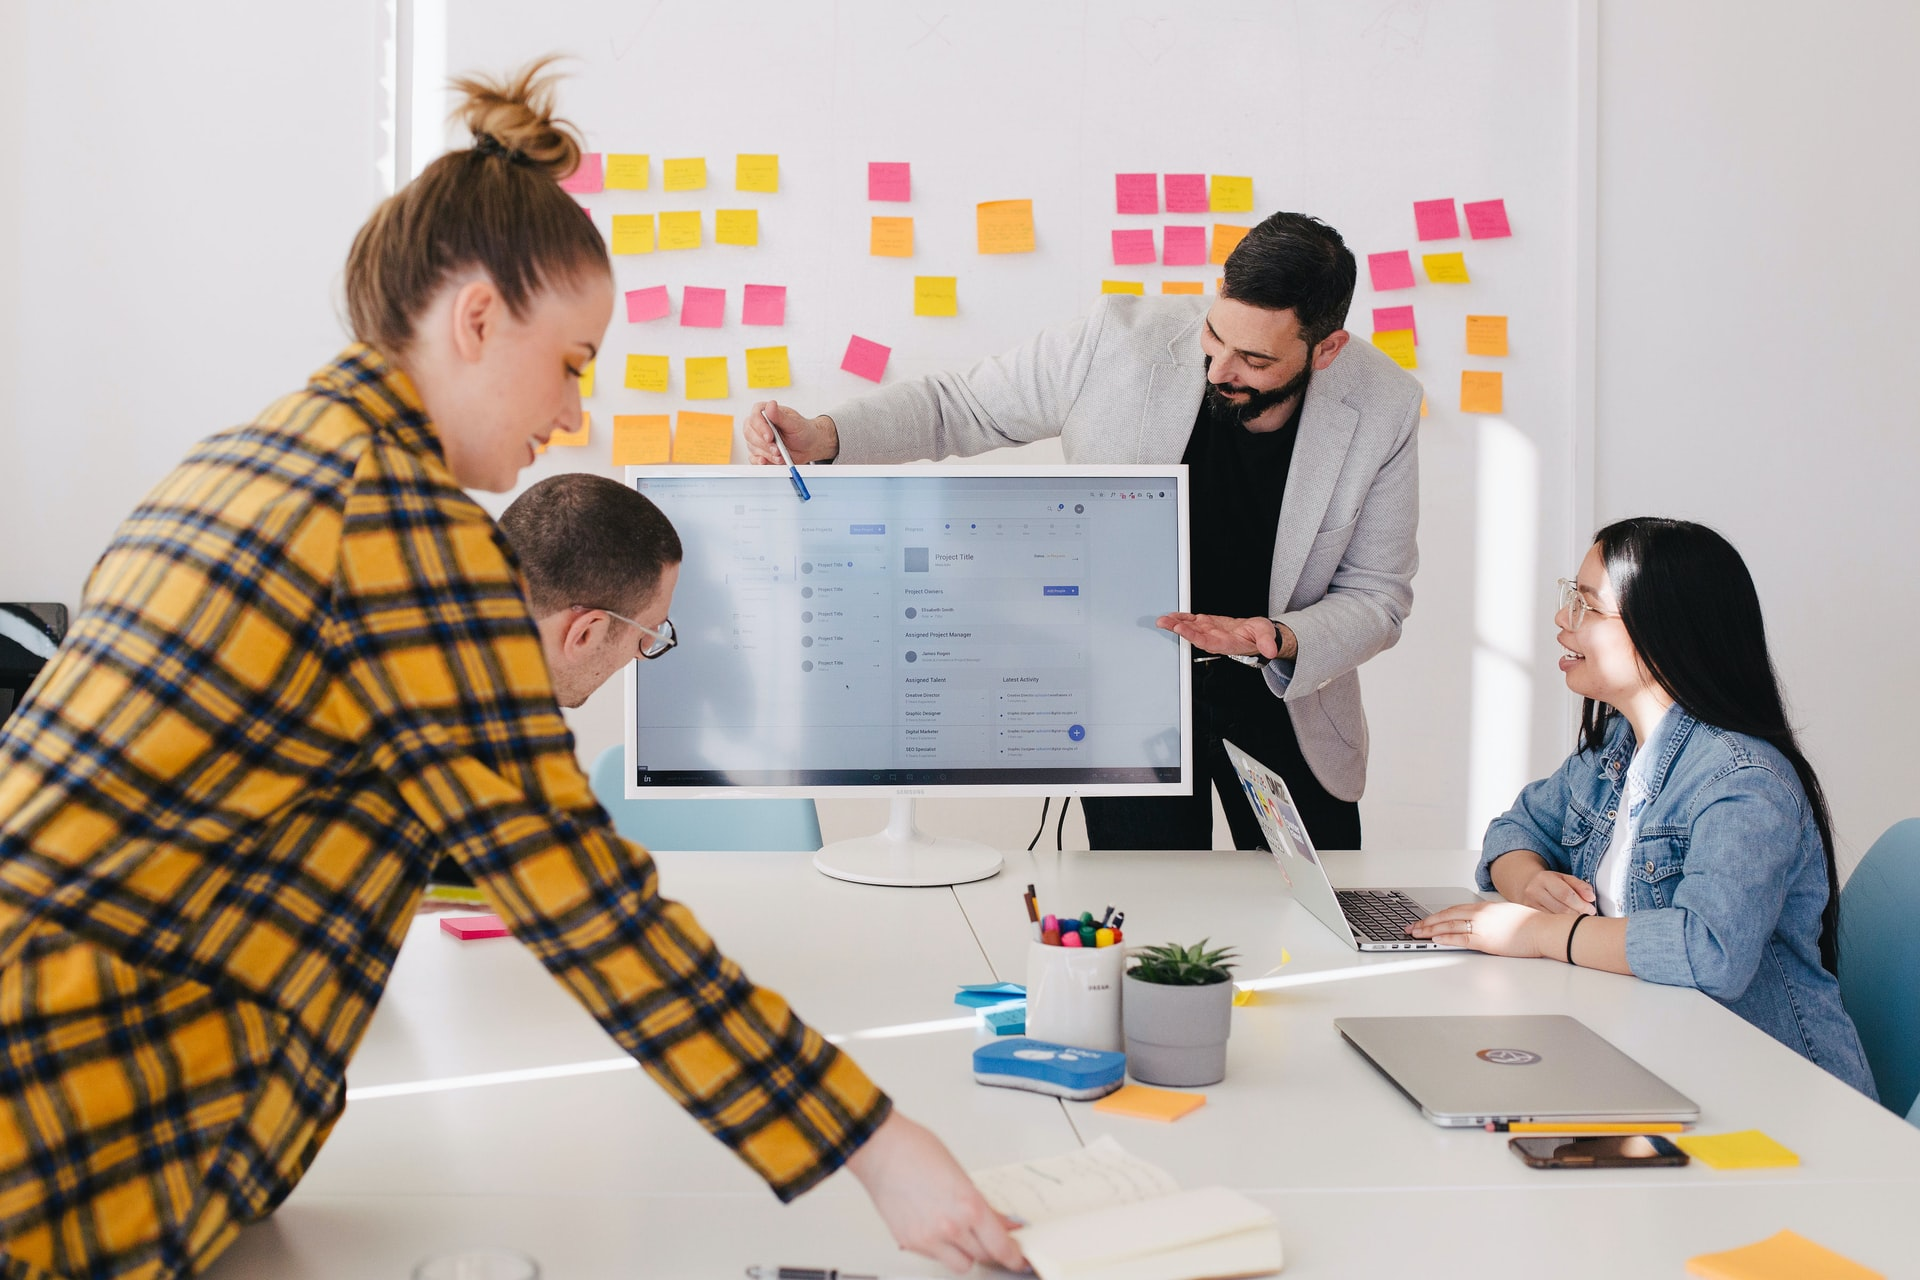 4 of The Best Sales Training Tips to Fast-Track Your Startup's Growth